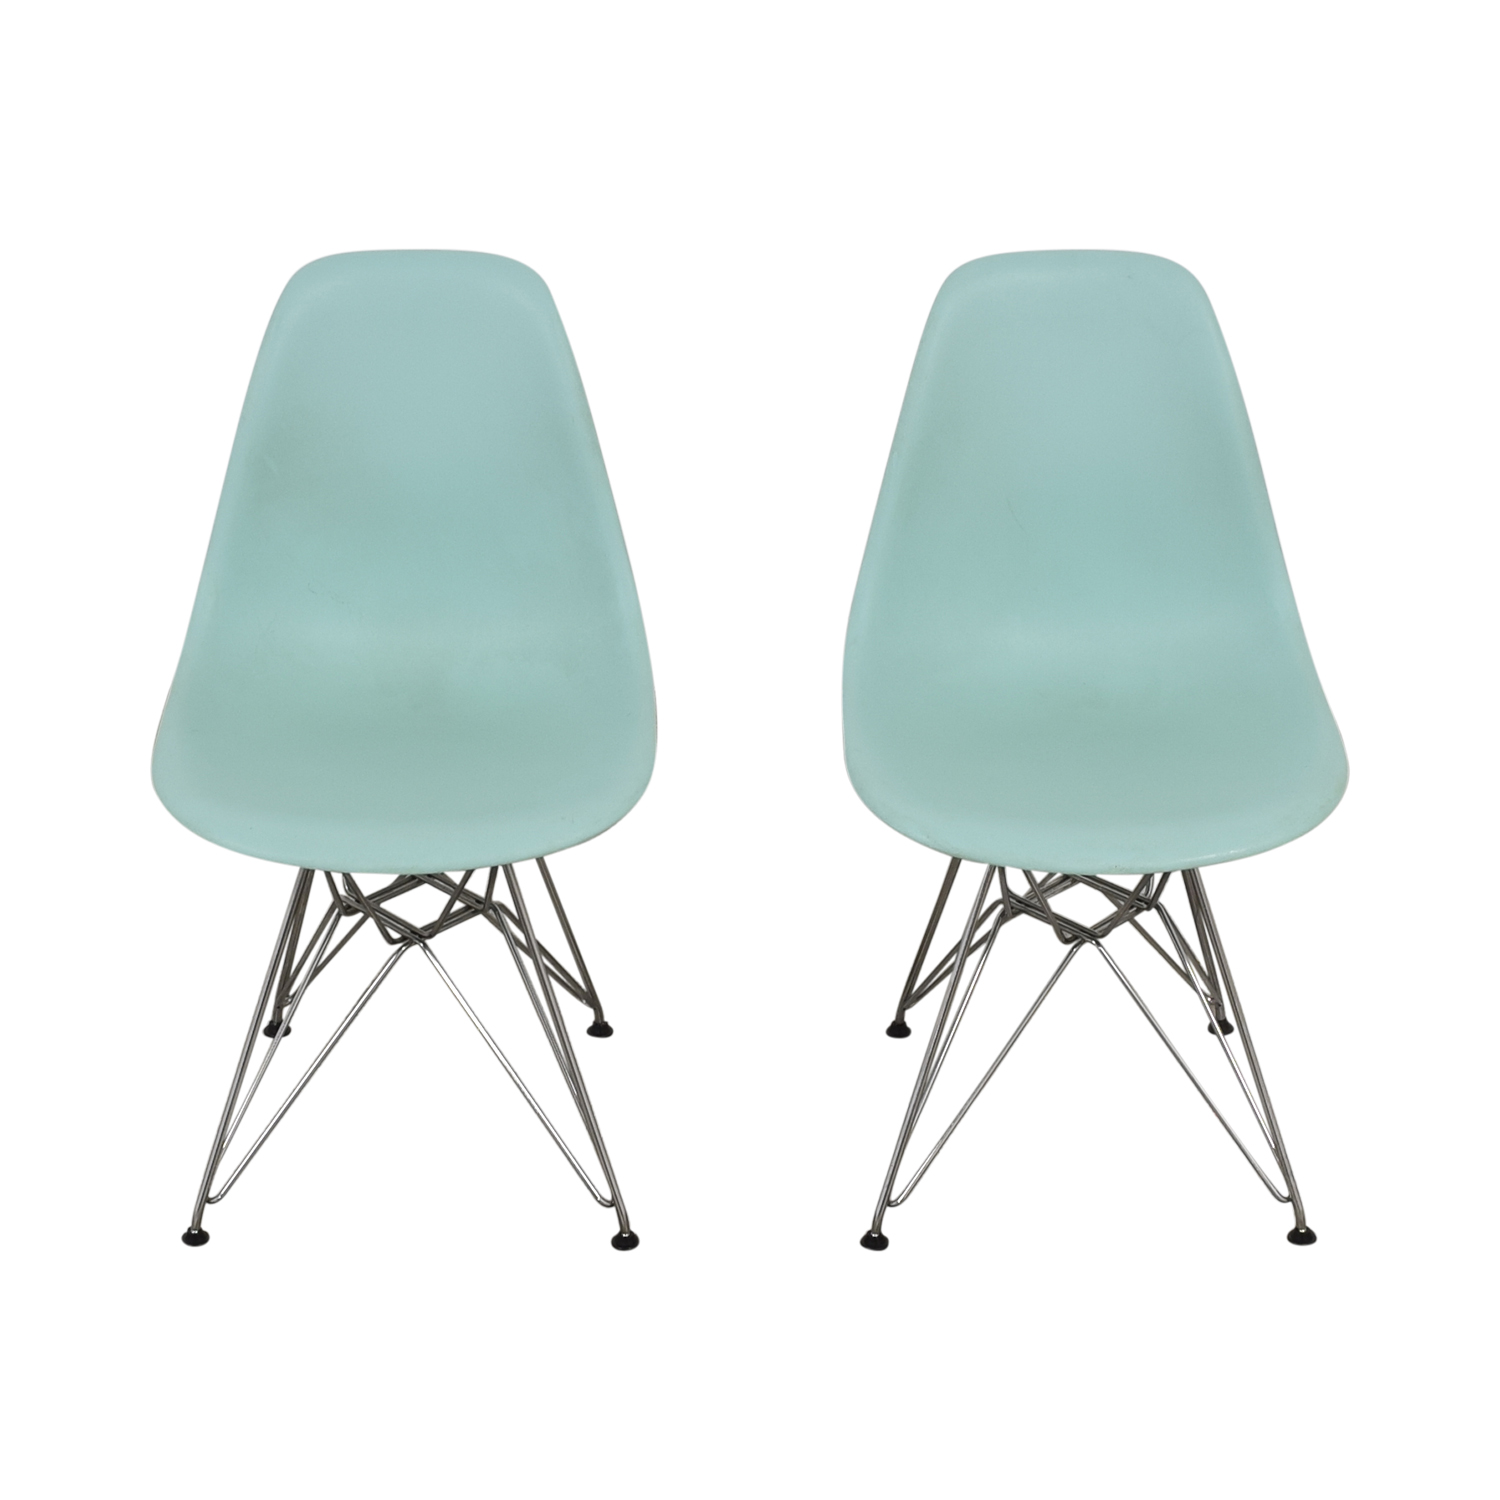 Herman Miller Herman Miller Eames Molded Plastic Side Chair with Wire Base for sale